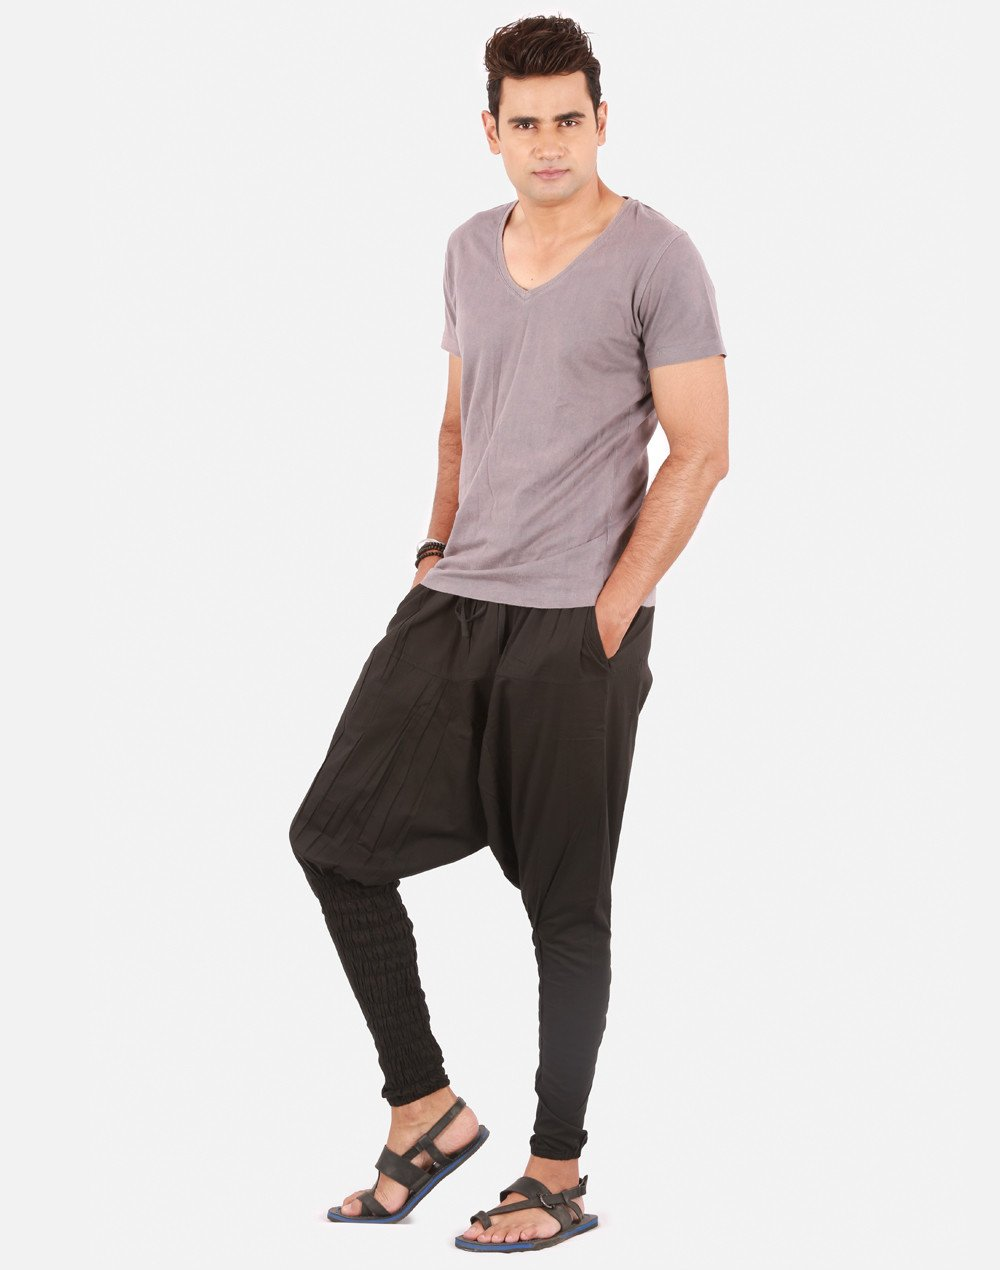 Add style and luxury to your wardrobe with mens harem pants